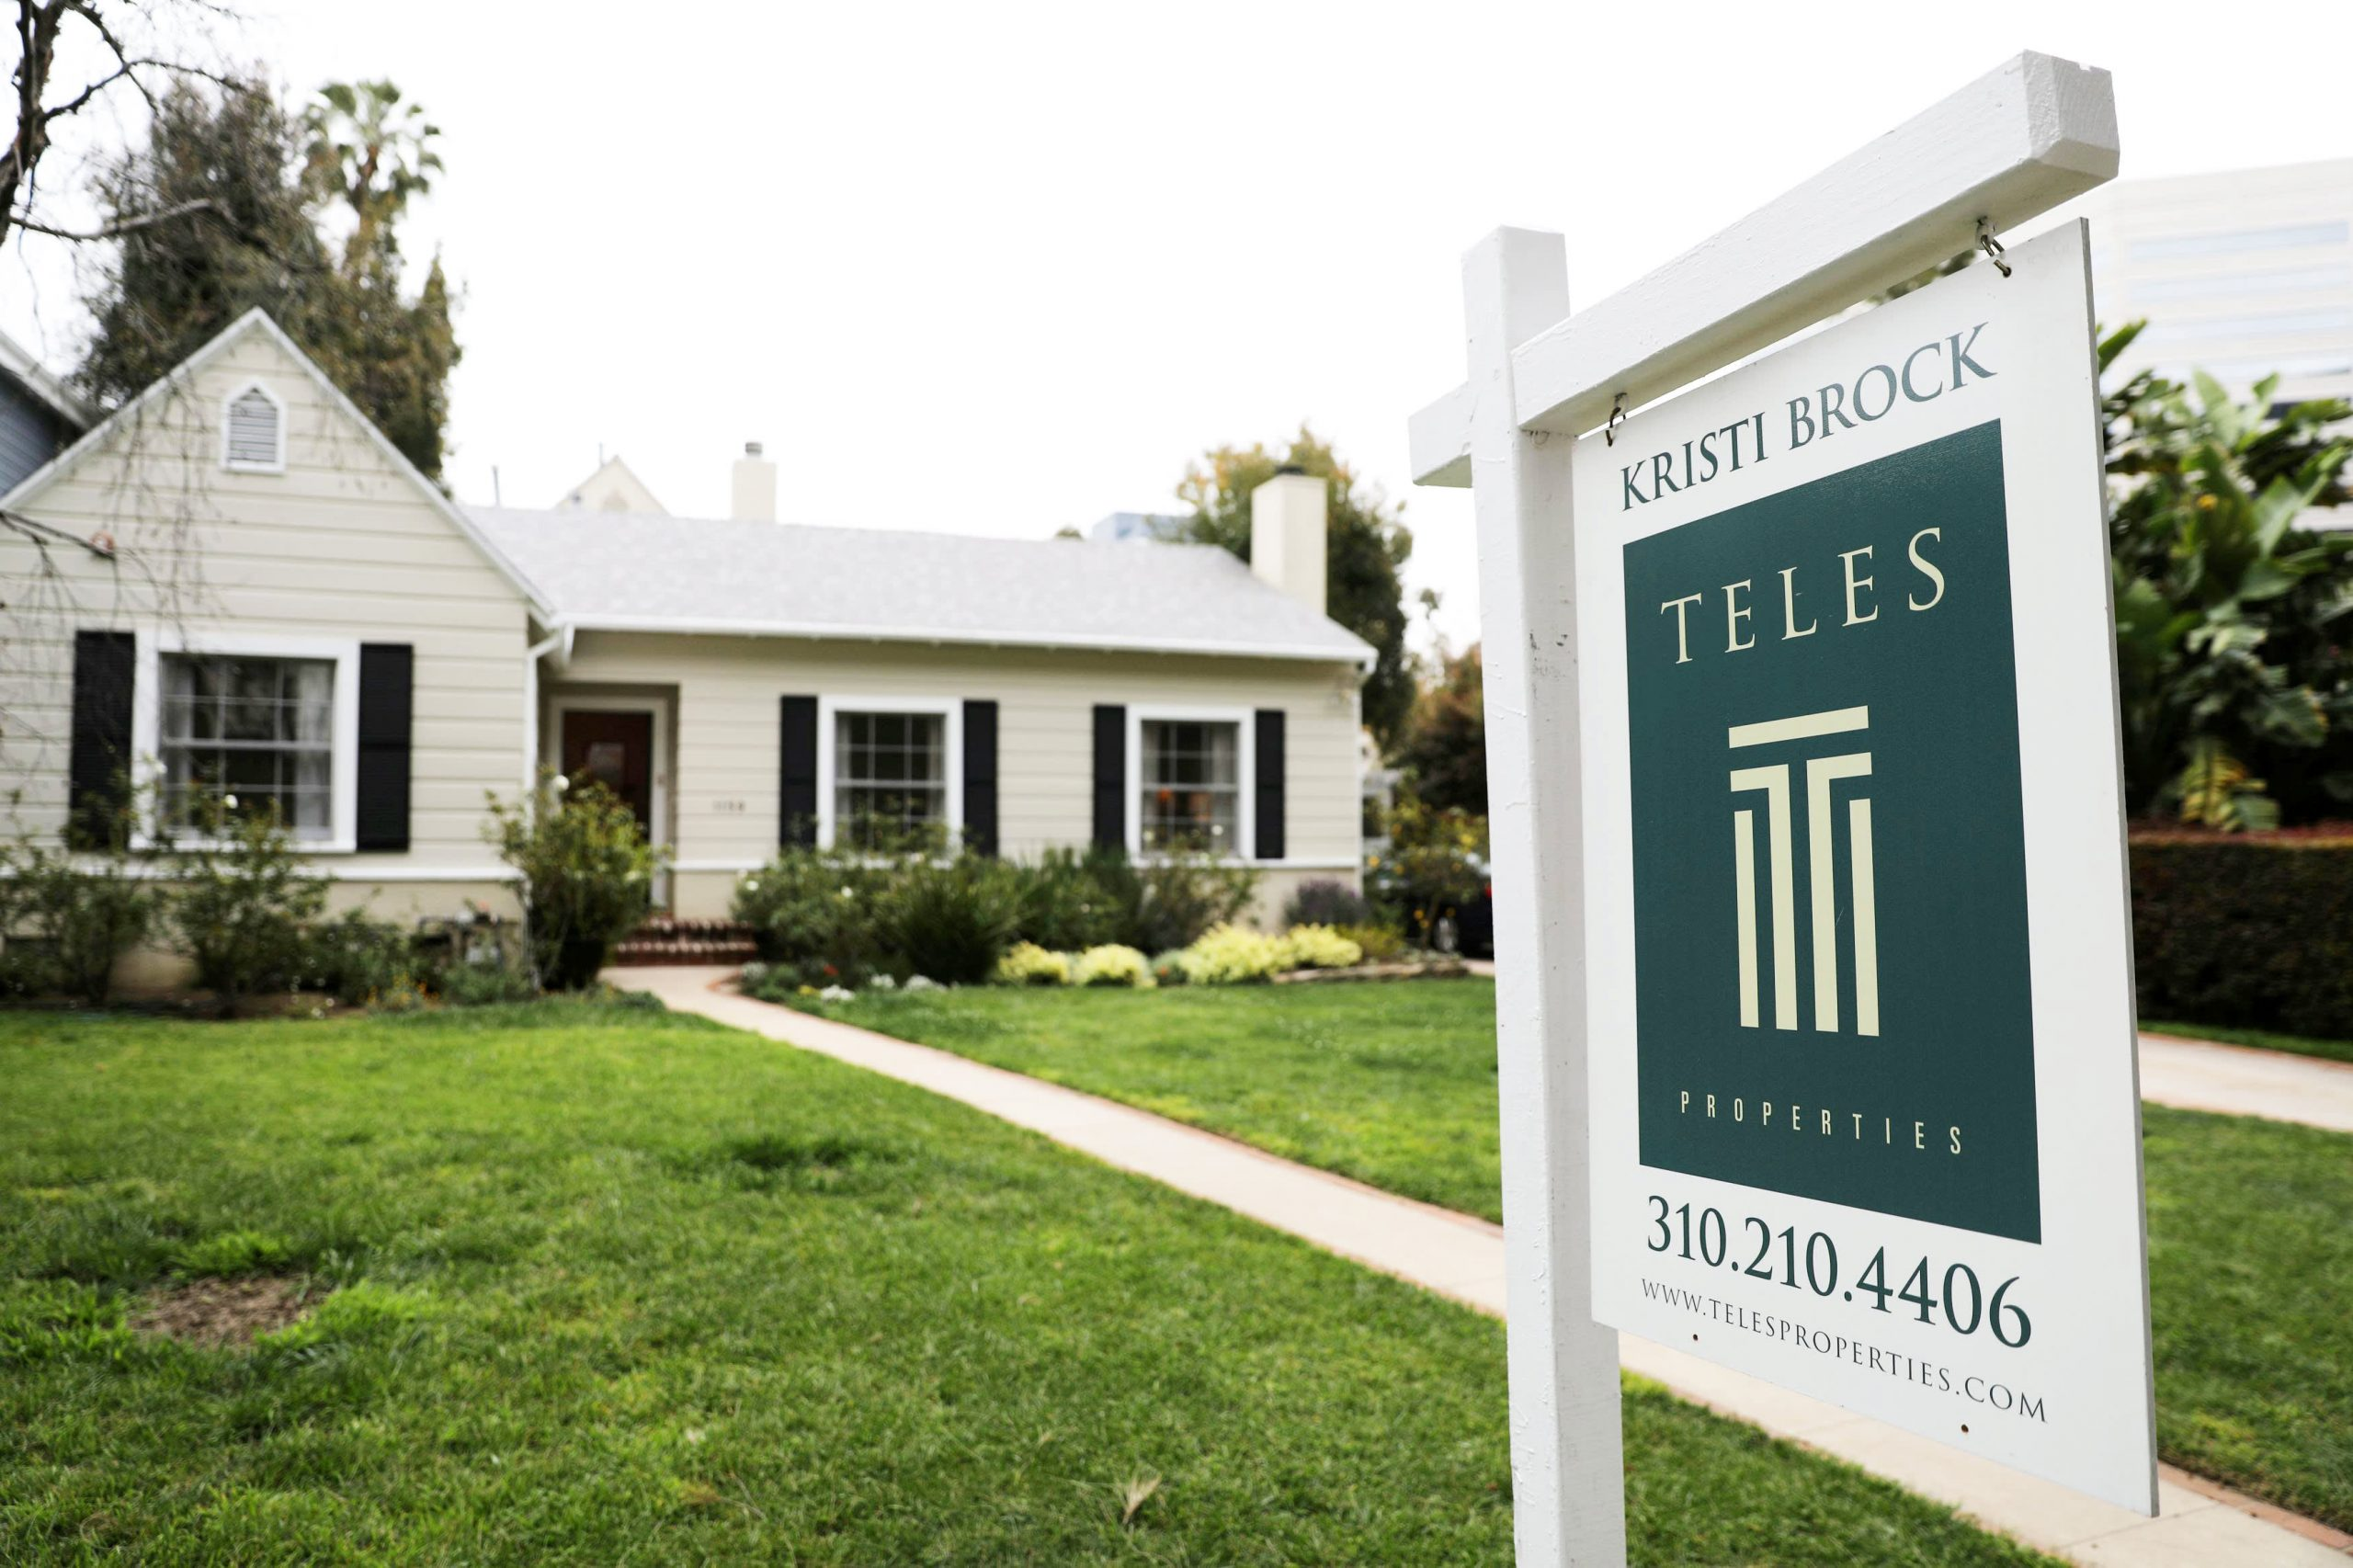 Mortgage refinance demand drops 20% as rates rise to 10-month high